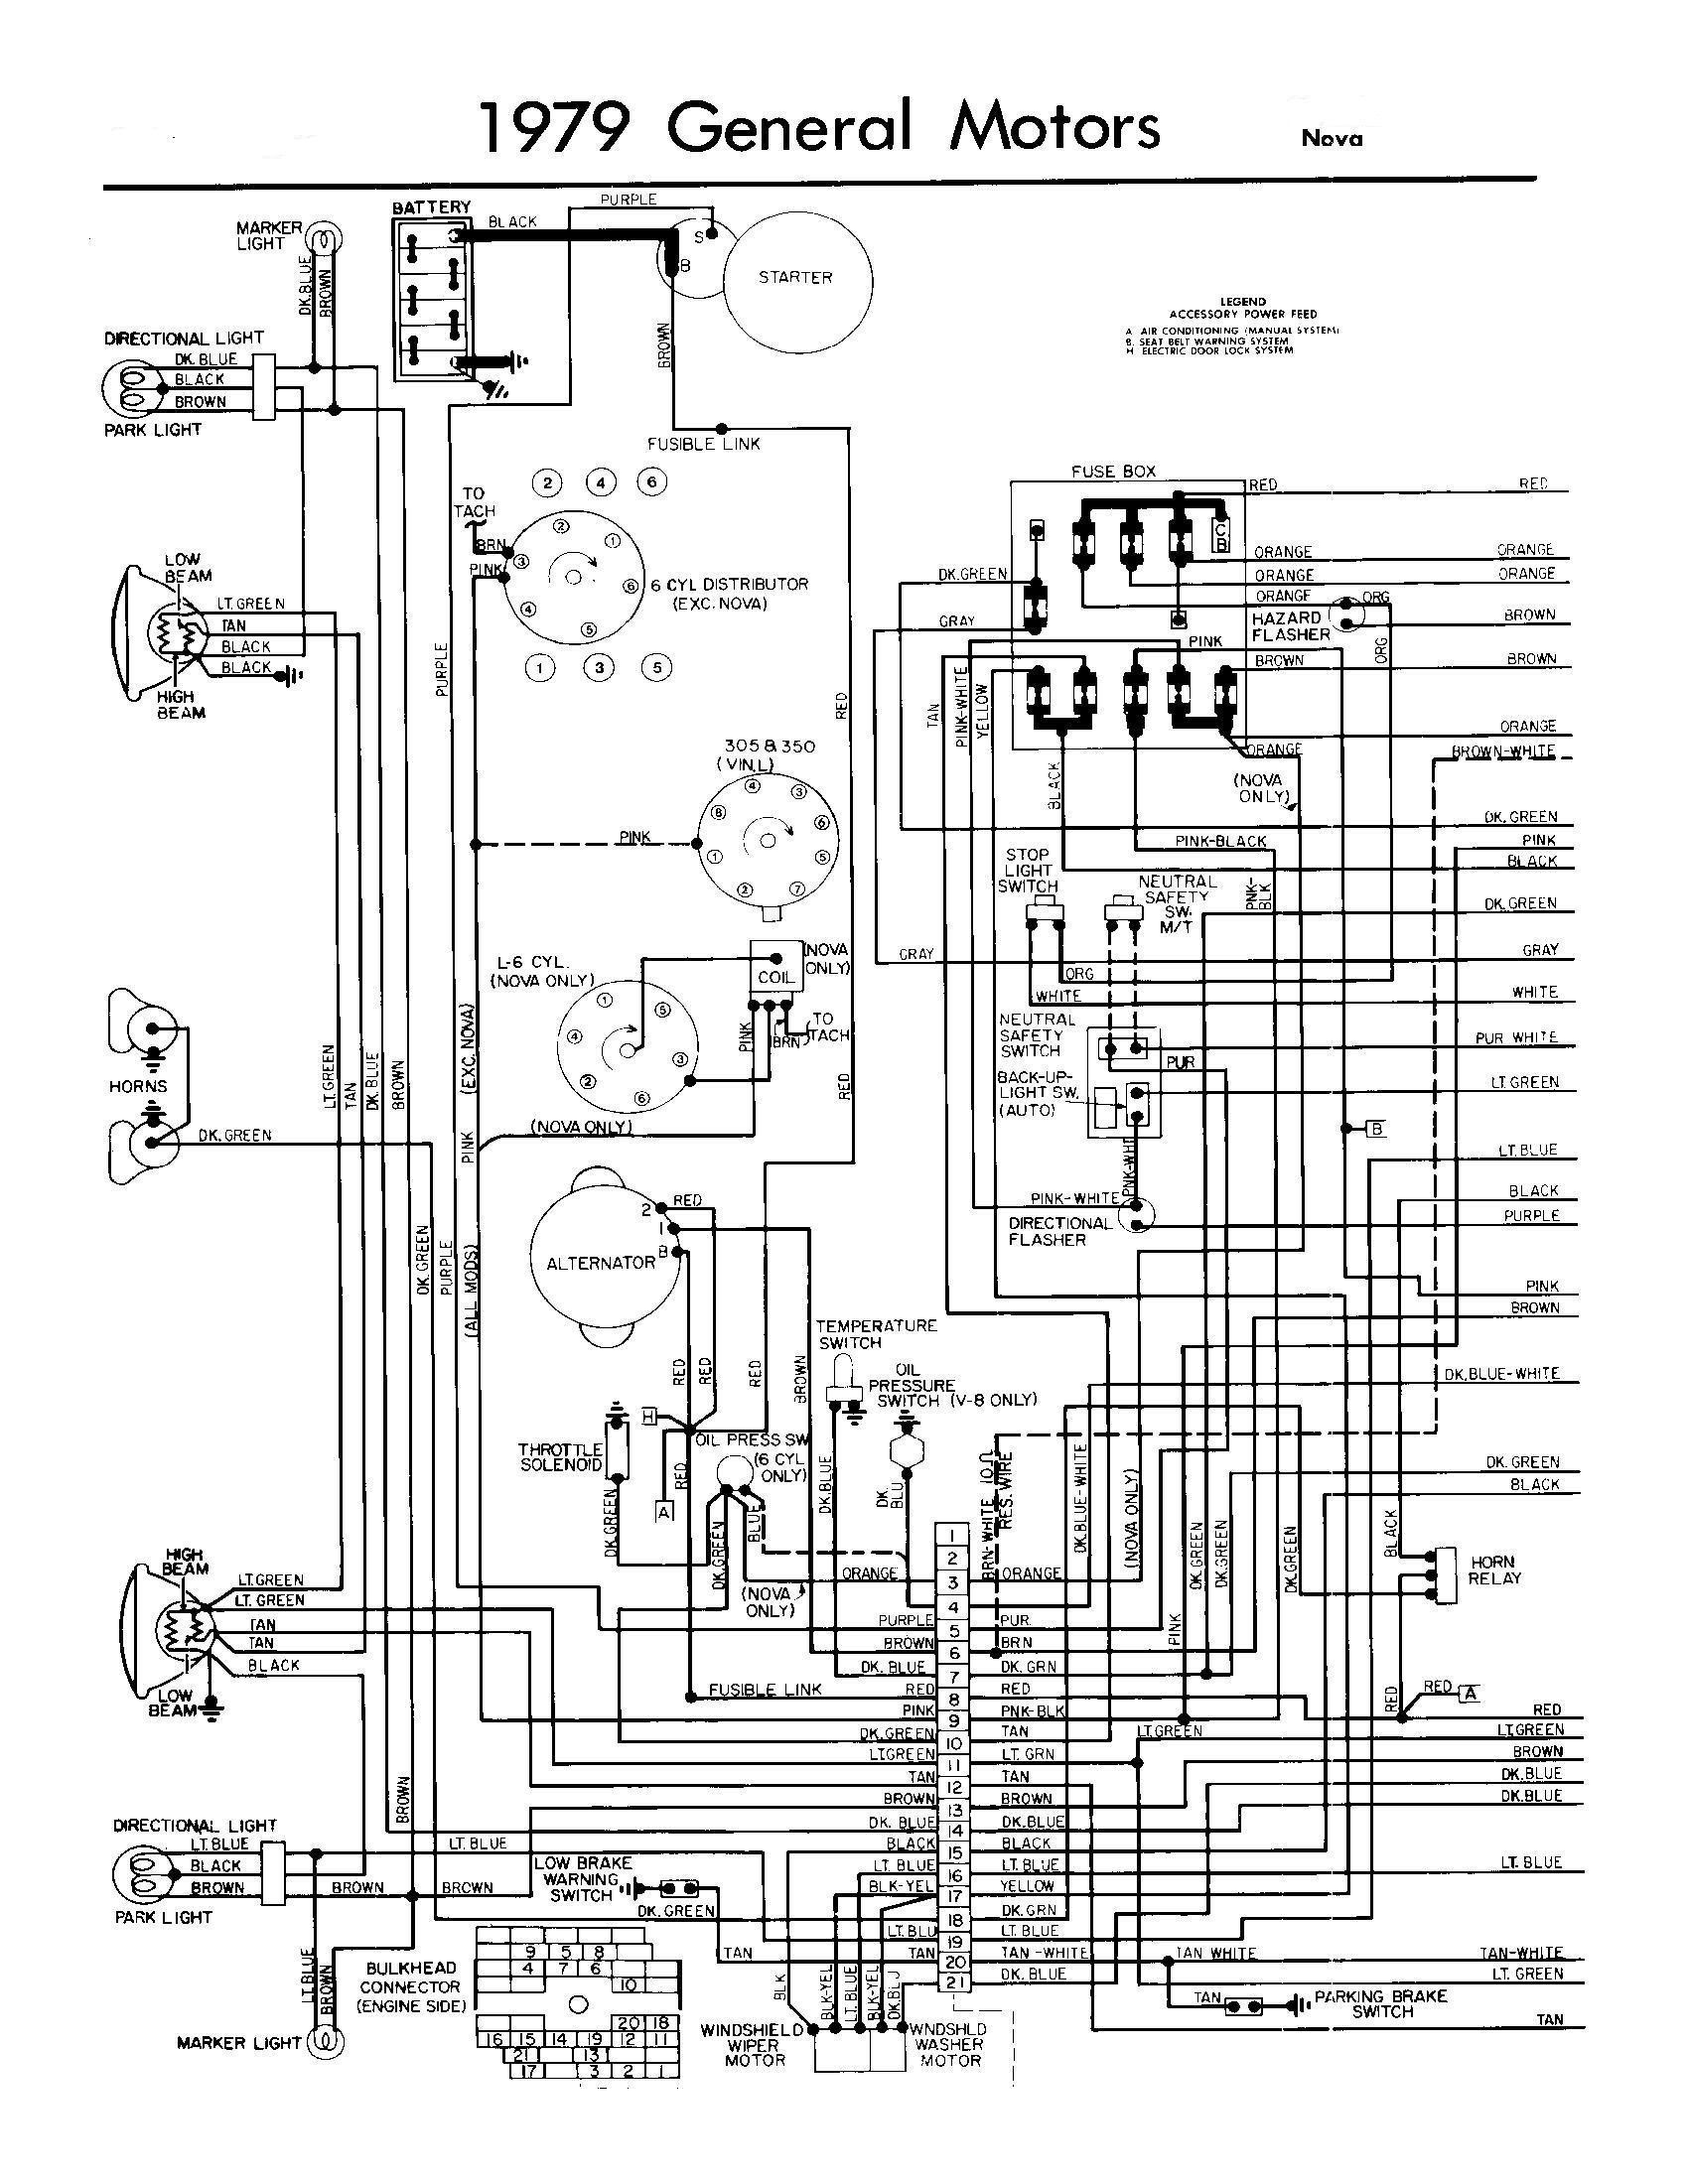 Wiring Diagram For 2001 Ferrari 360 | Wiring Diagram on ferrari 308 gts, ferrari 308 qv wiring,